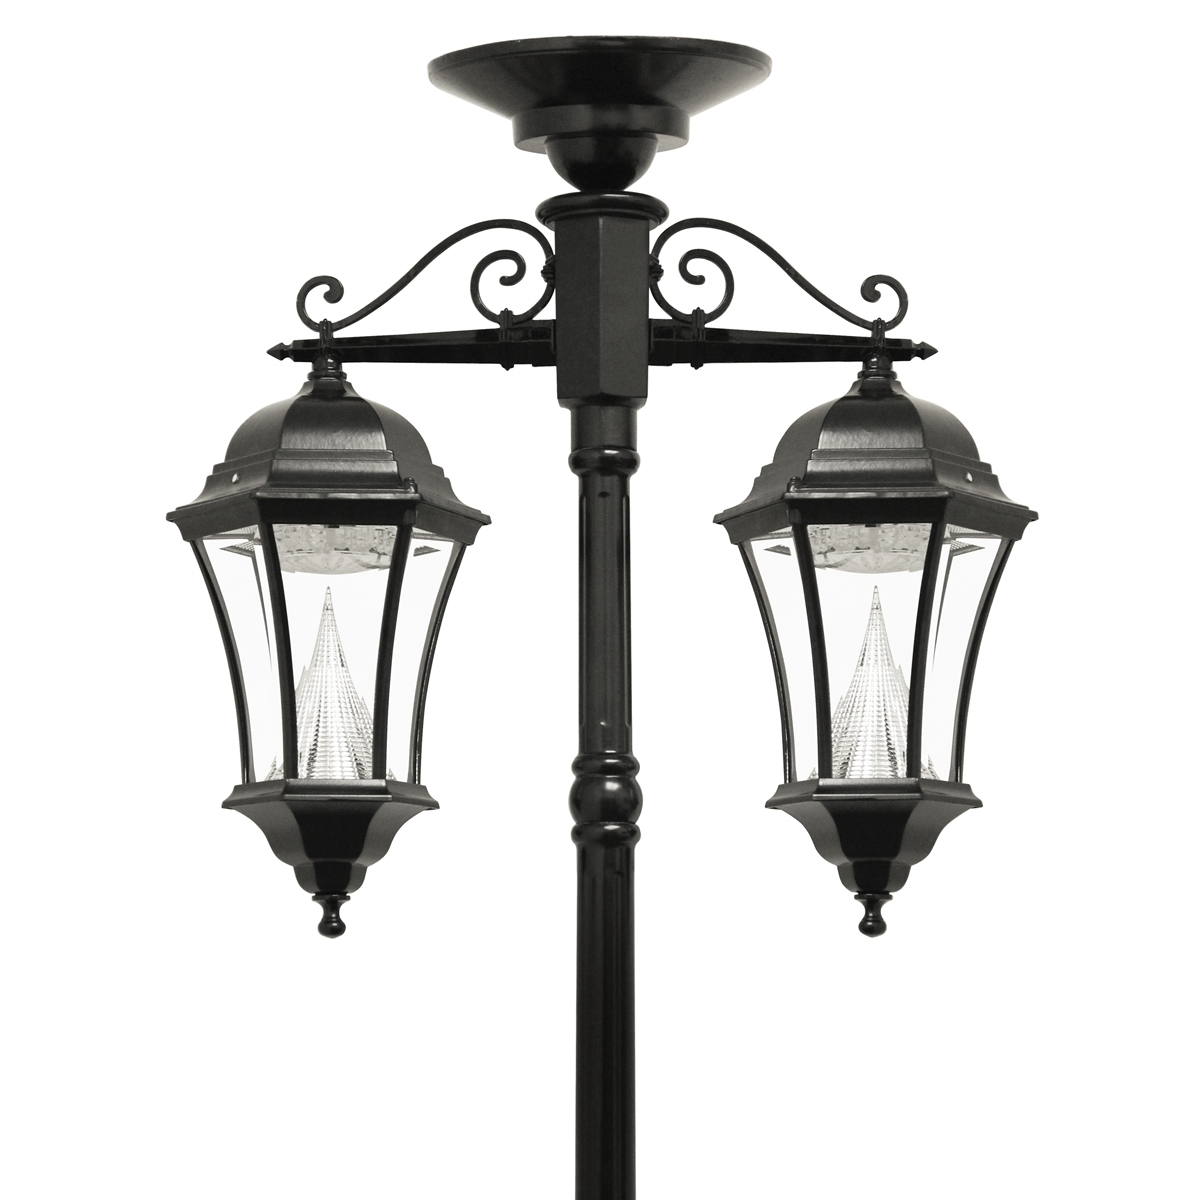 Victorian Solar Lamp Series – Double Downward Hanging Lamp Post Gs Intended For Current Outdoor Hanging Lights At Ebay (View 19 of 20)